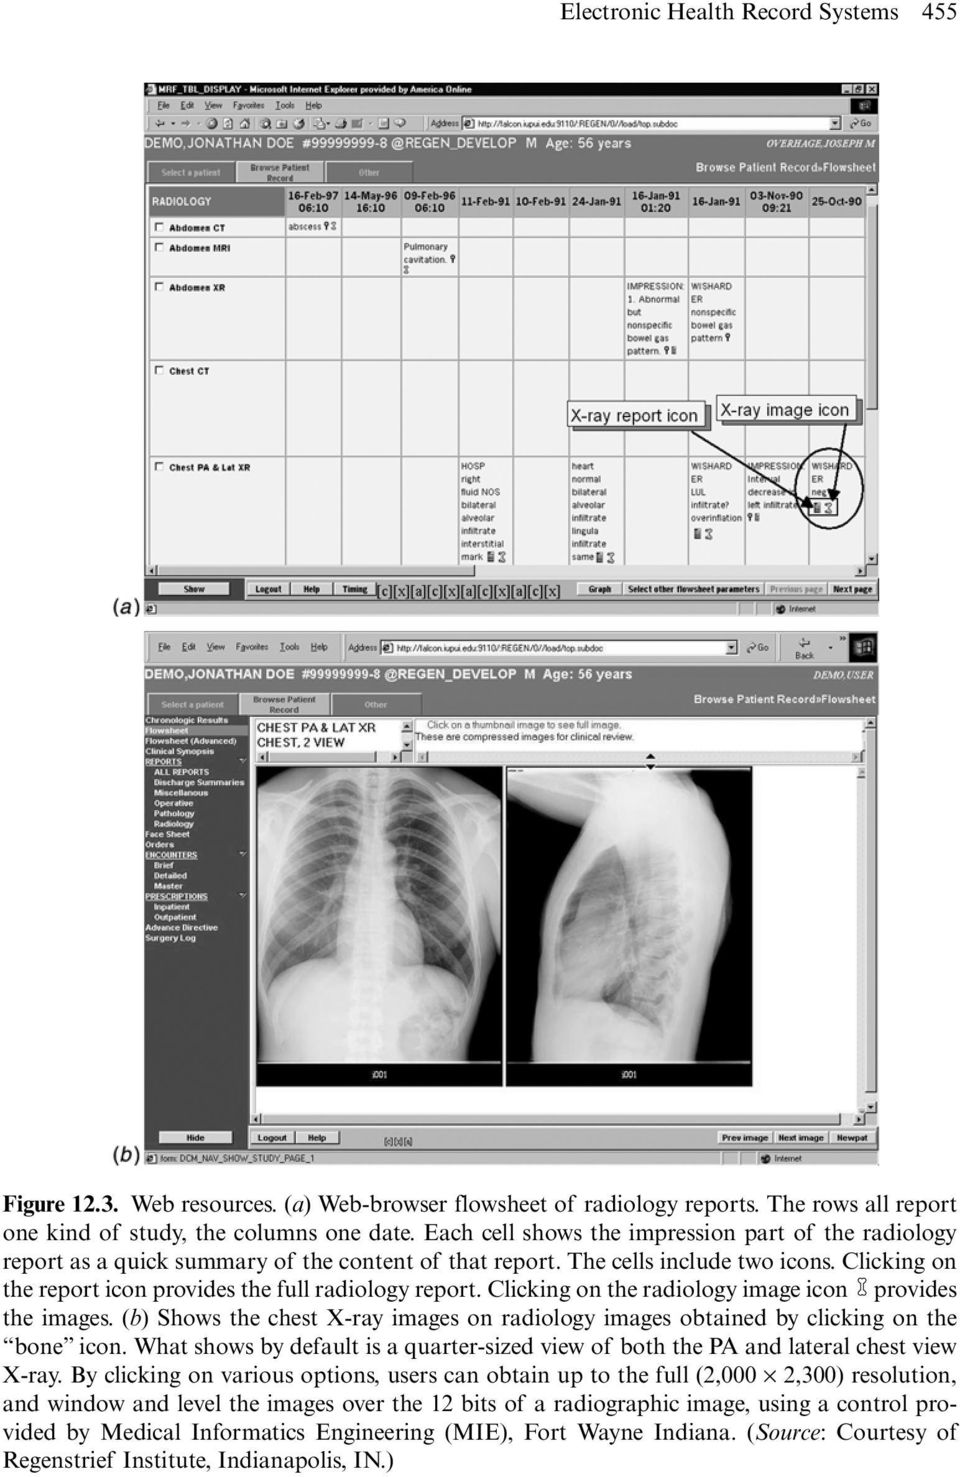 Clicking on the report icon provides the full radiology report. Clicking on the radiology image icon provides the images.